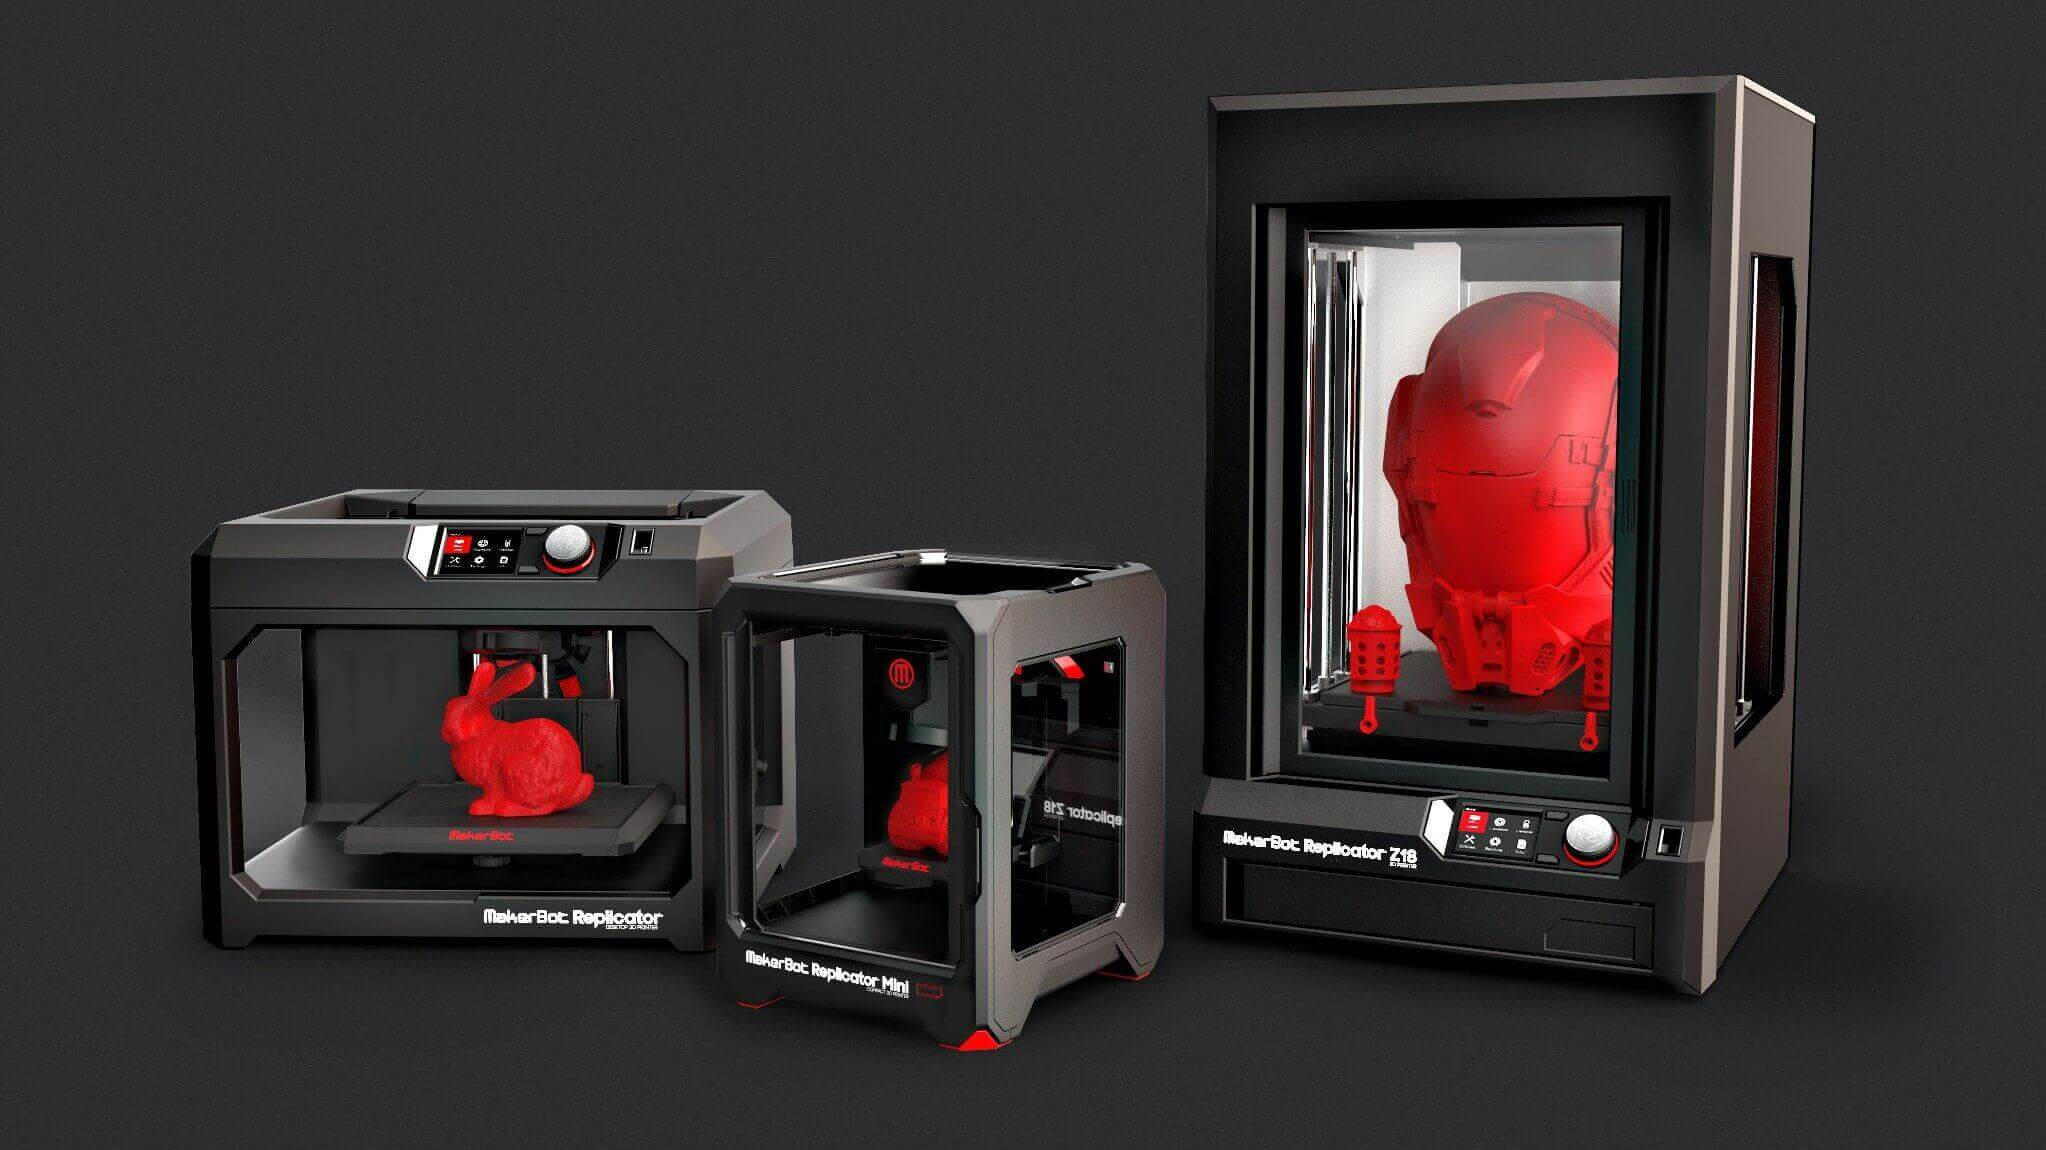 Stratasys Faces Fraud Lawsuit over MakerBot 5th Gen | All3DP